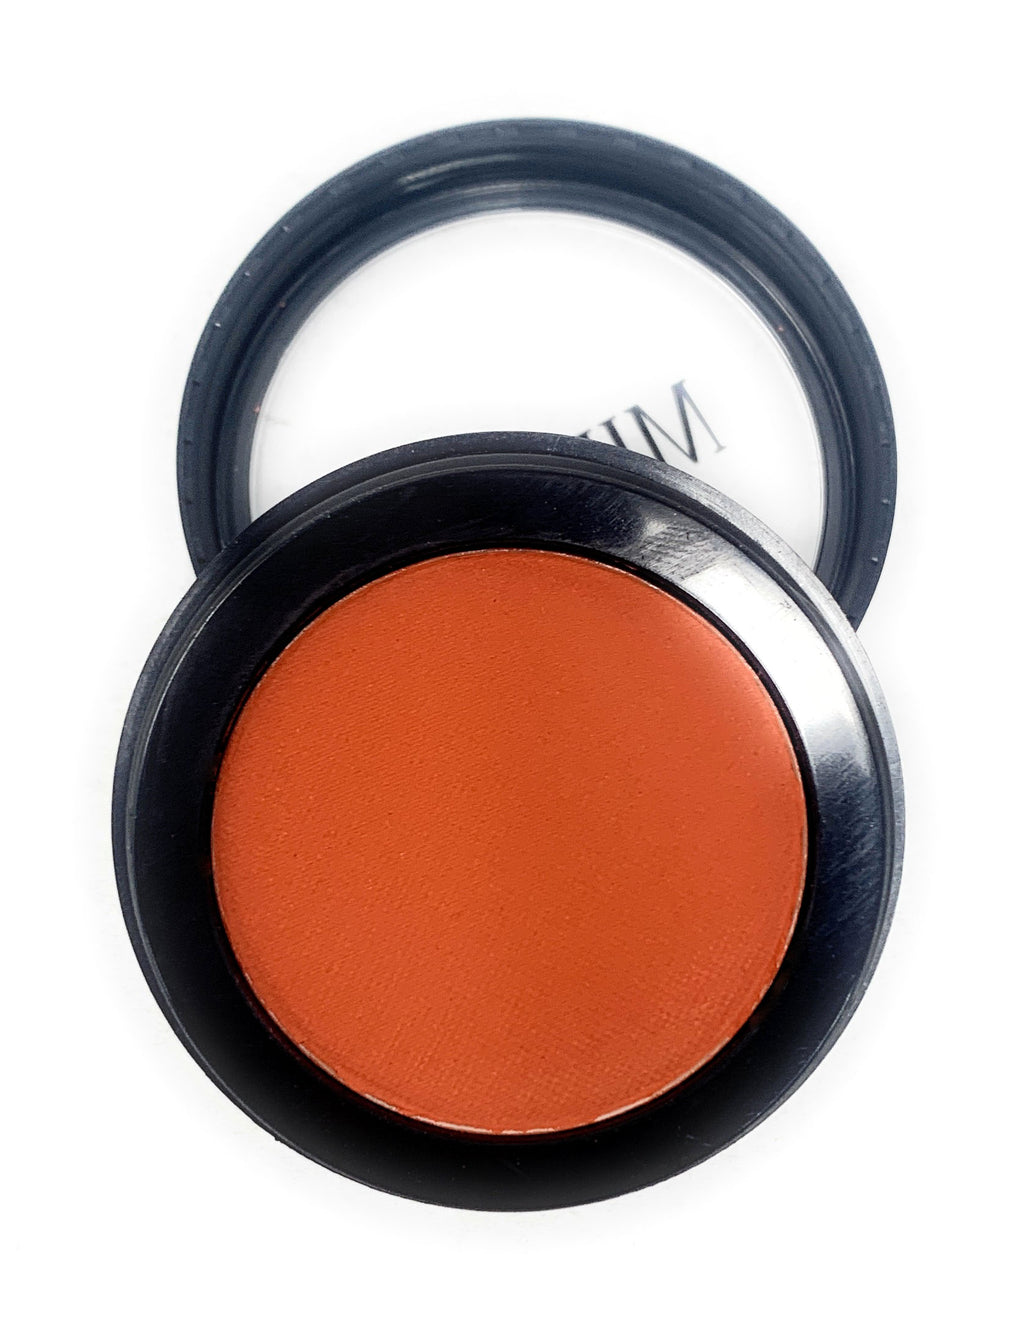 Single Pressed Orange Matte Eyeshadow In the Shade Nemo Compact Smooth Pigmented Eyeshadow Colour